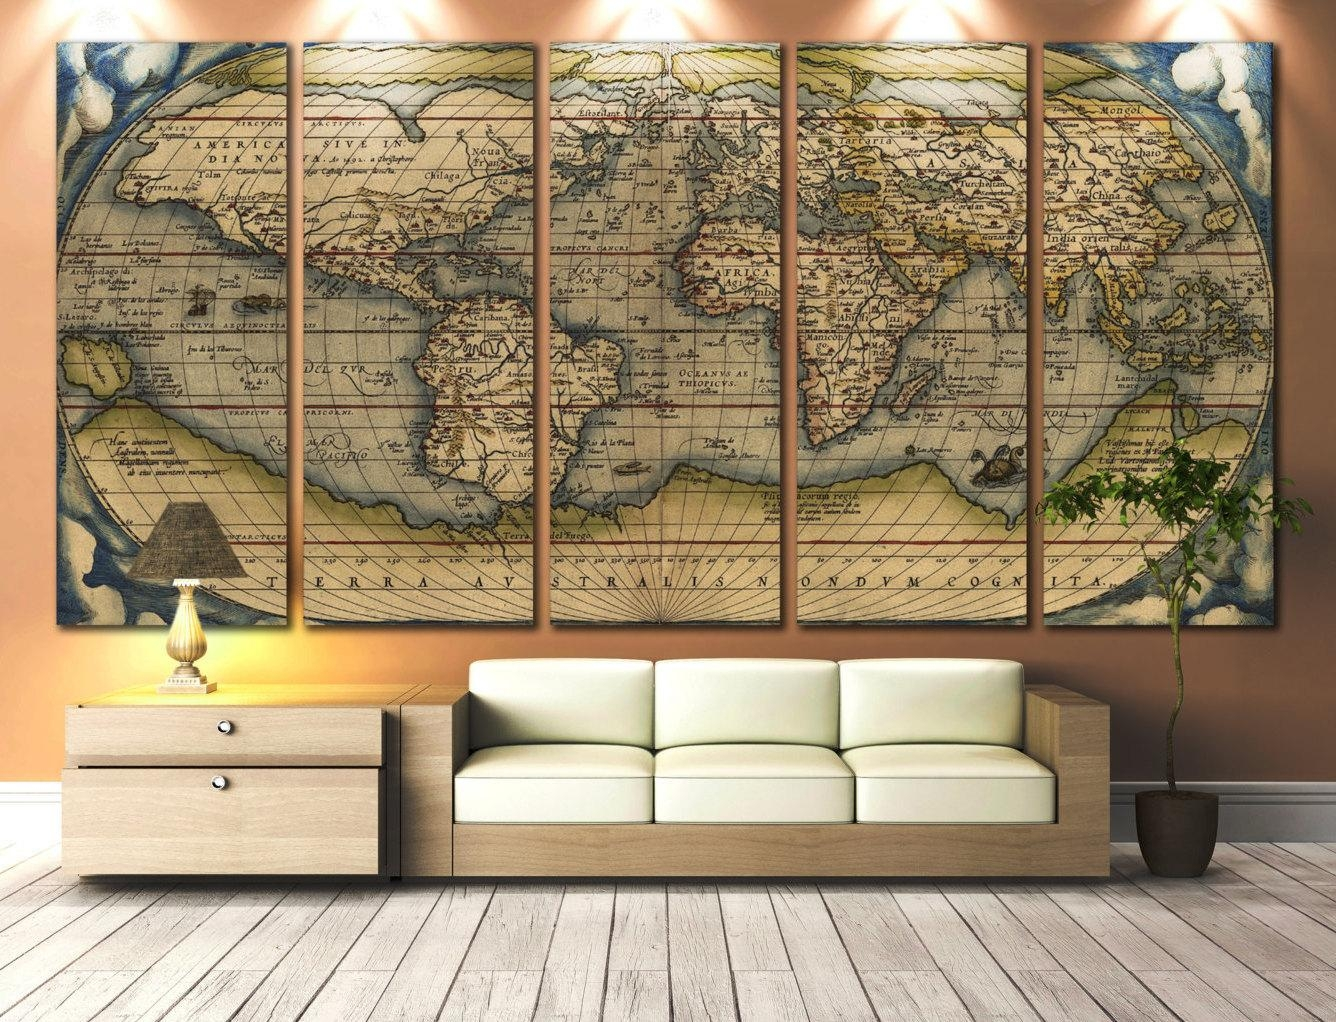 Oversized Wall Art Ideas: 20+ Choices Of Large Vintage Wall Art